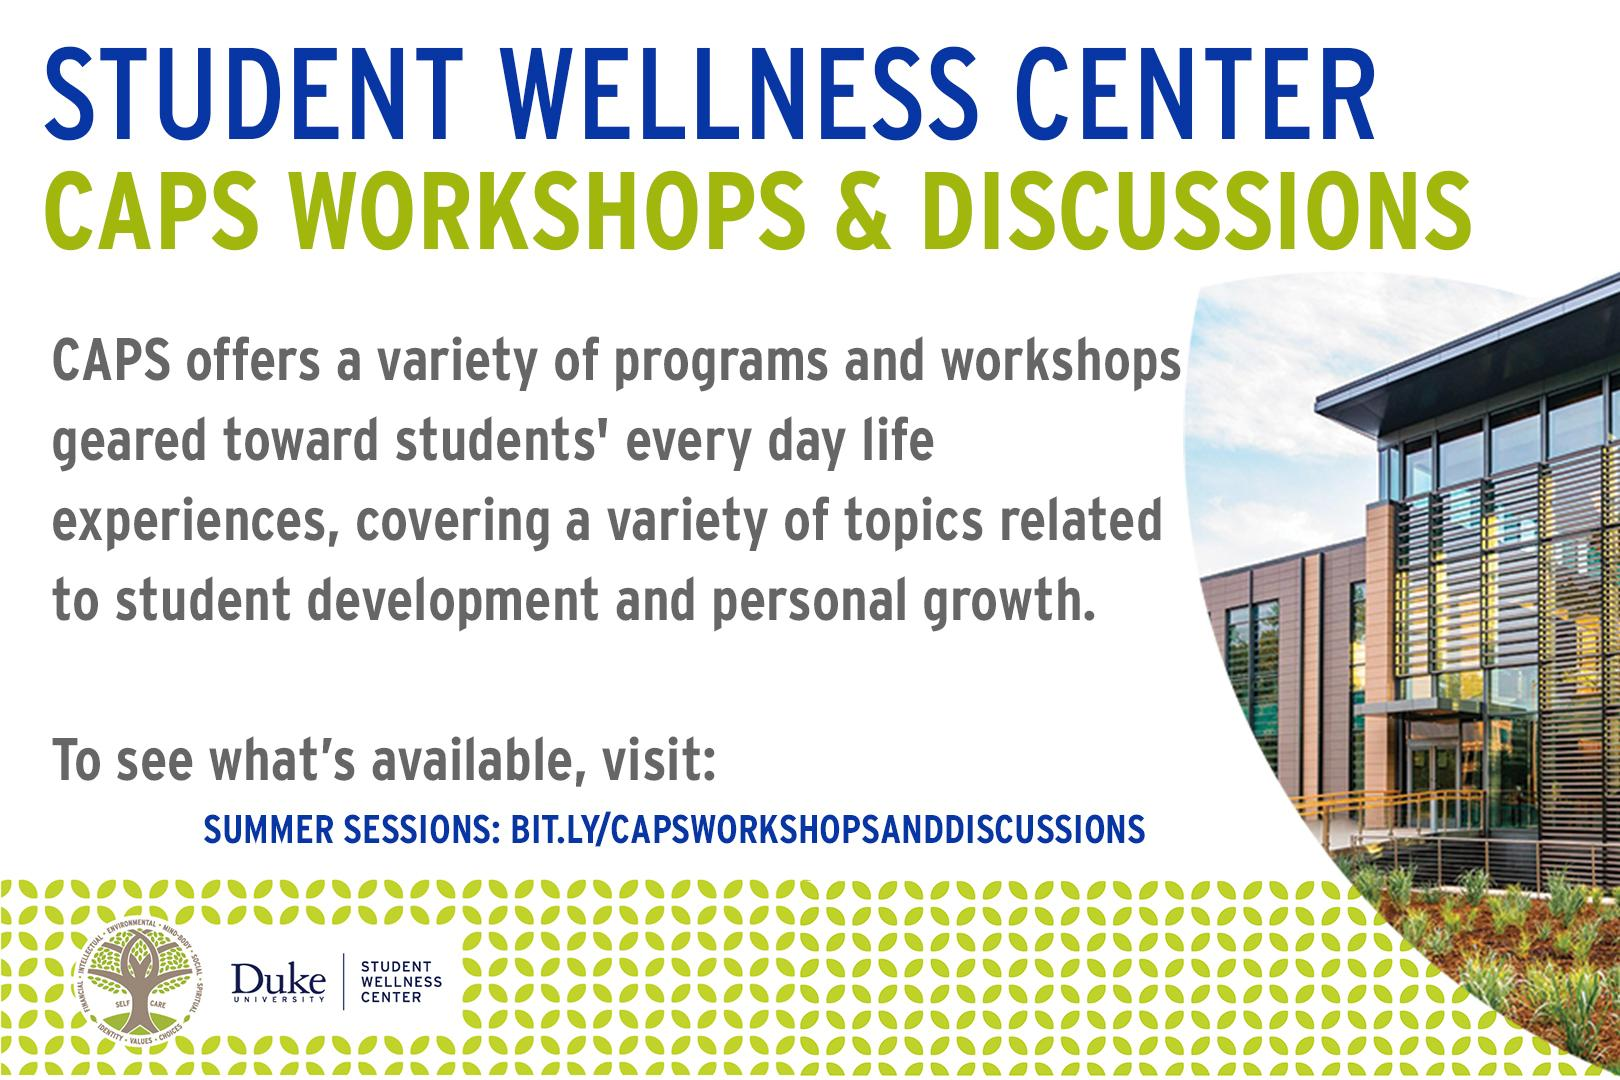 3.	Student Wellness Center CAPS Workshops and Discussions CAPS offers a variety of programs and workshops geared toward students' every day life experiences, covering a variety of topics related to student development  and personal growth. To see what's available, visit: summer sessions: bit.ly/capsworkshopsanddiscussions. Picture of student wellness center.